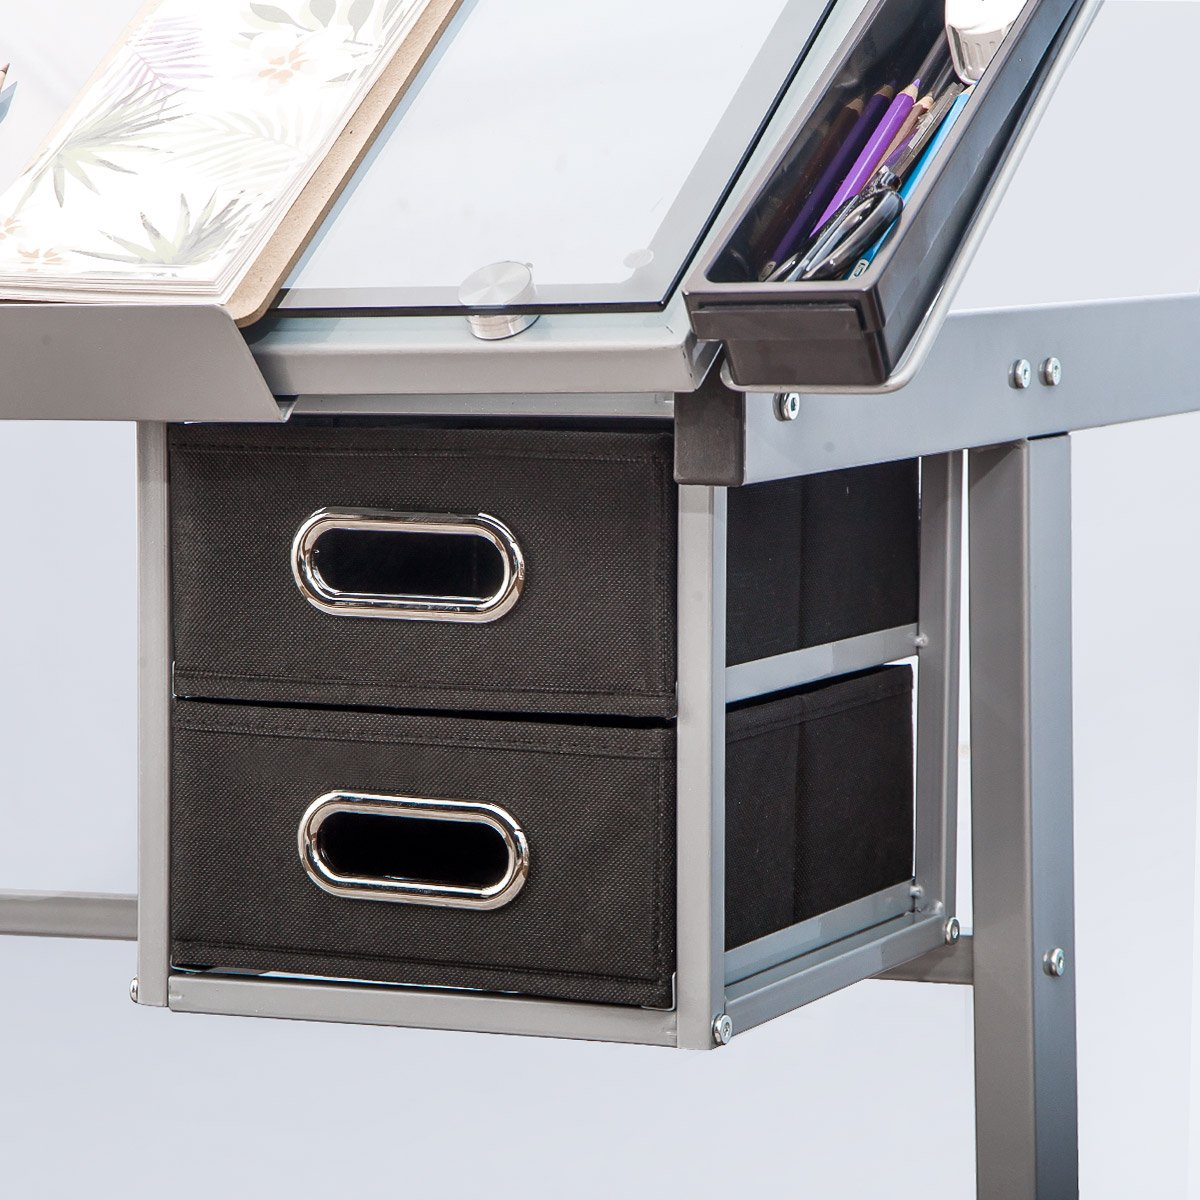 Harper&Bright Designs Adjustable Drafting Table Drawing Desk with Tempered Glass Top, Two Drawers and Castors by Harper&Bright Designs (Image #6)